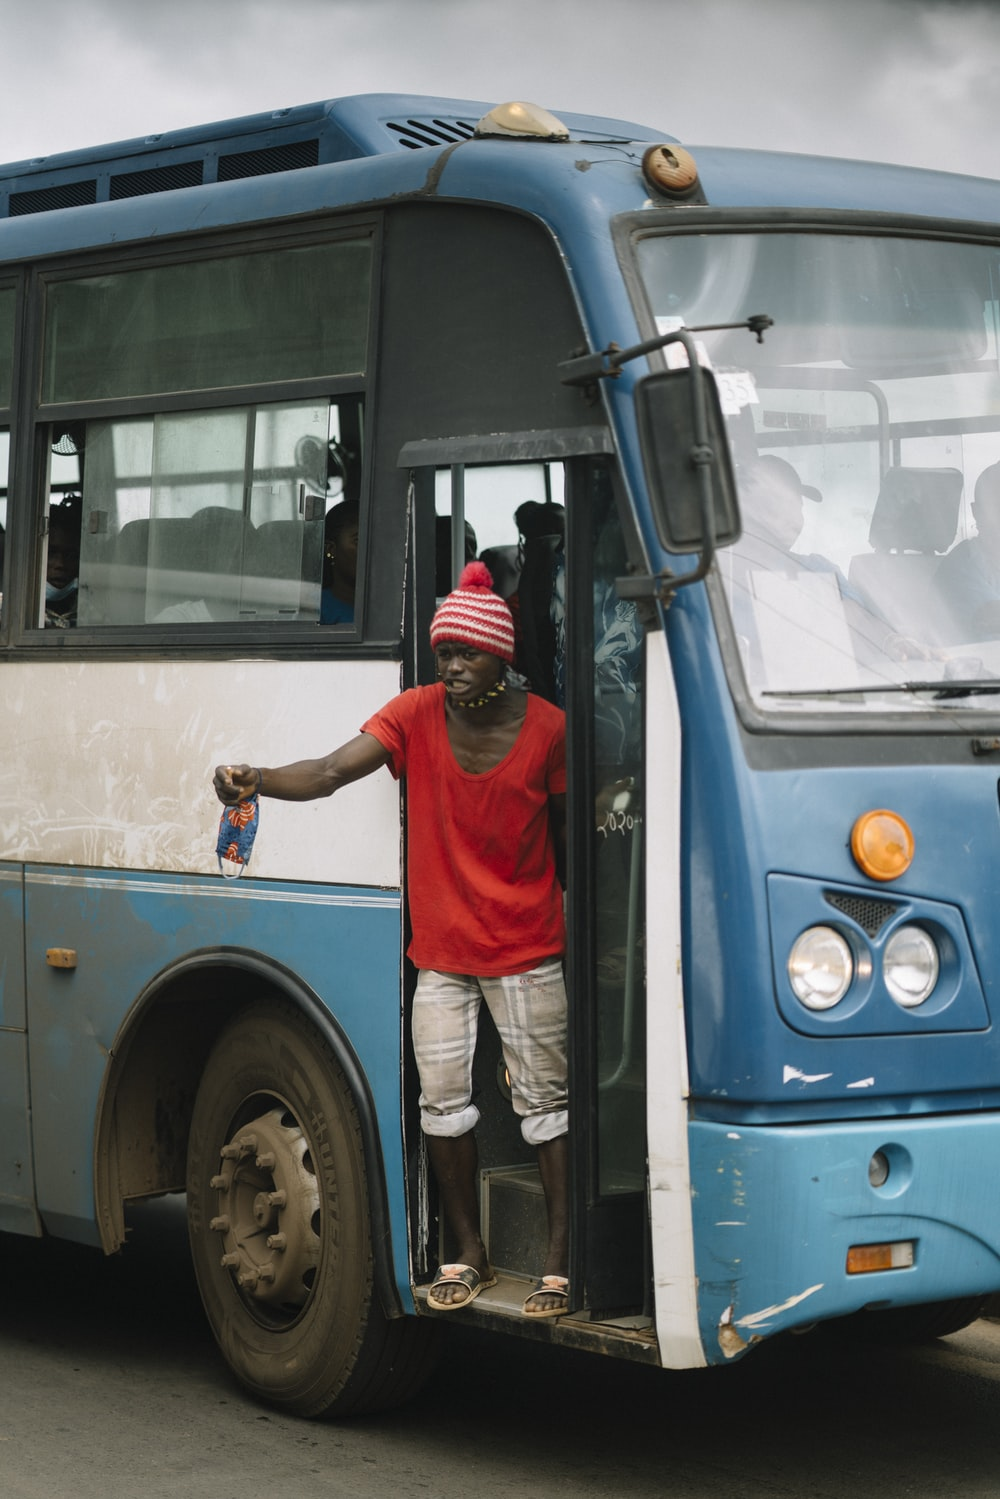 man in red t-shirt and white pants standing in front of blue bus during daytime